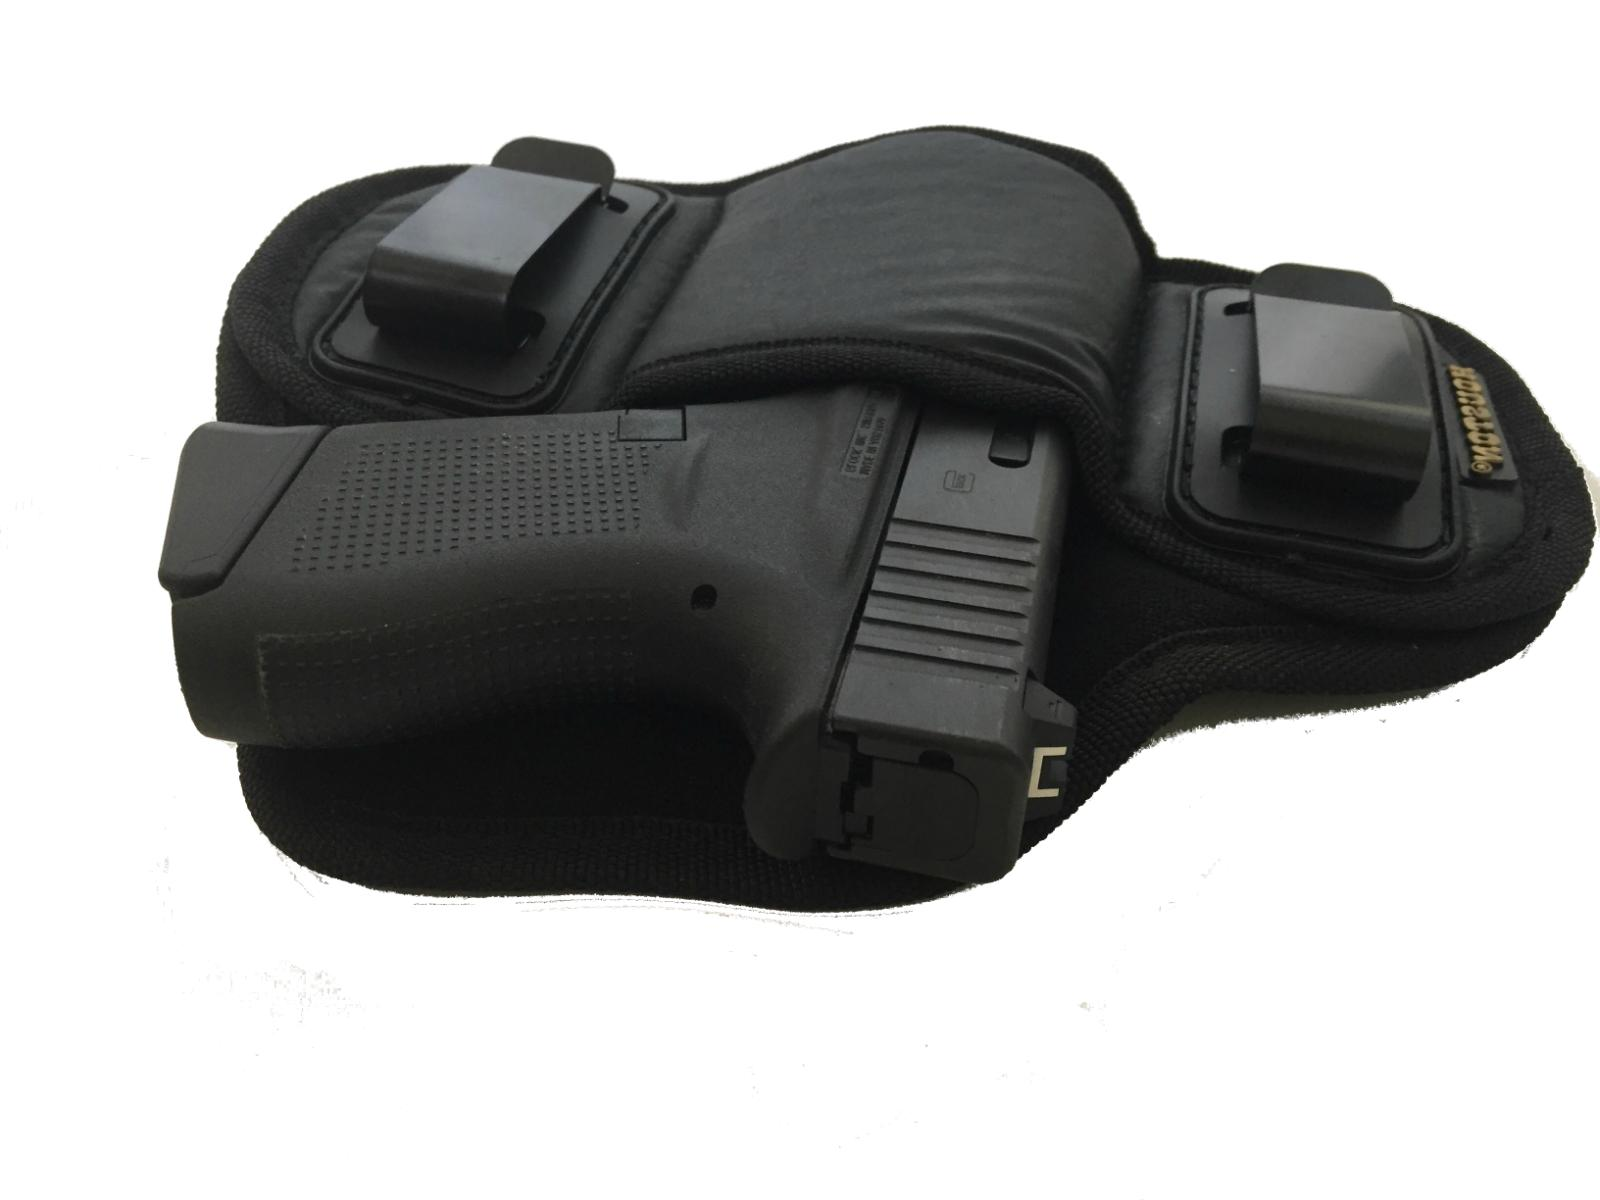 Tactical Pancake Concealed Carry IWB Gun Holster Houston Leather Choose